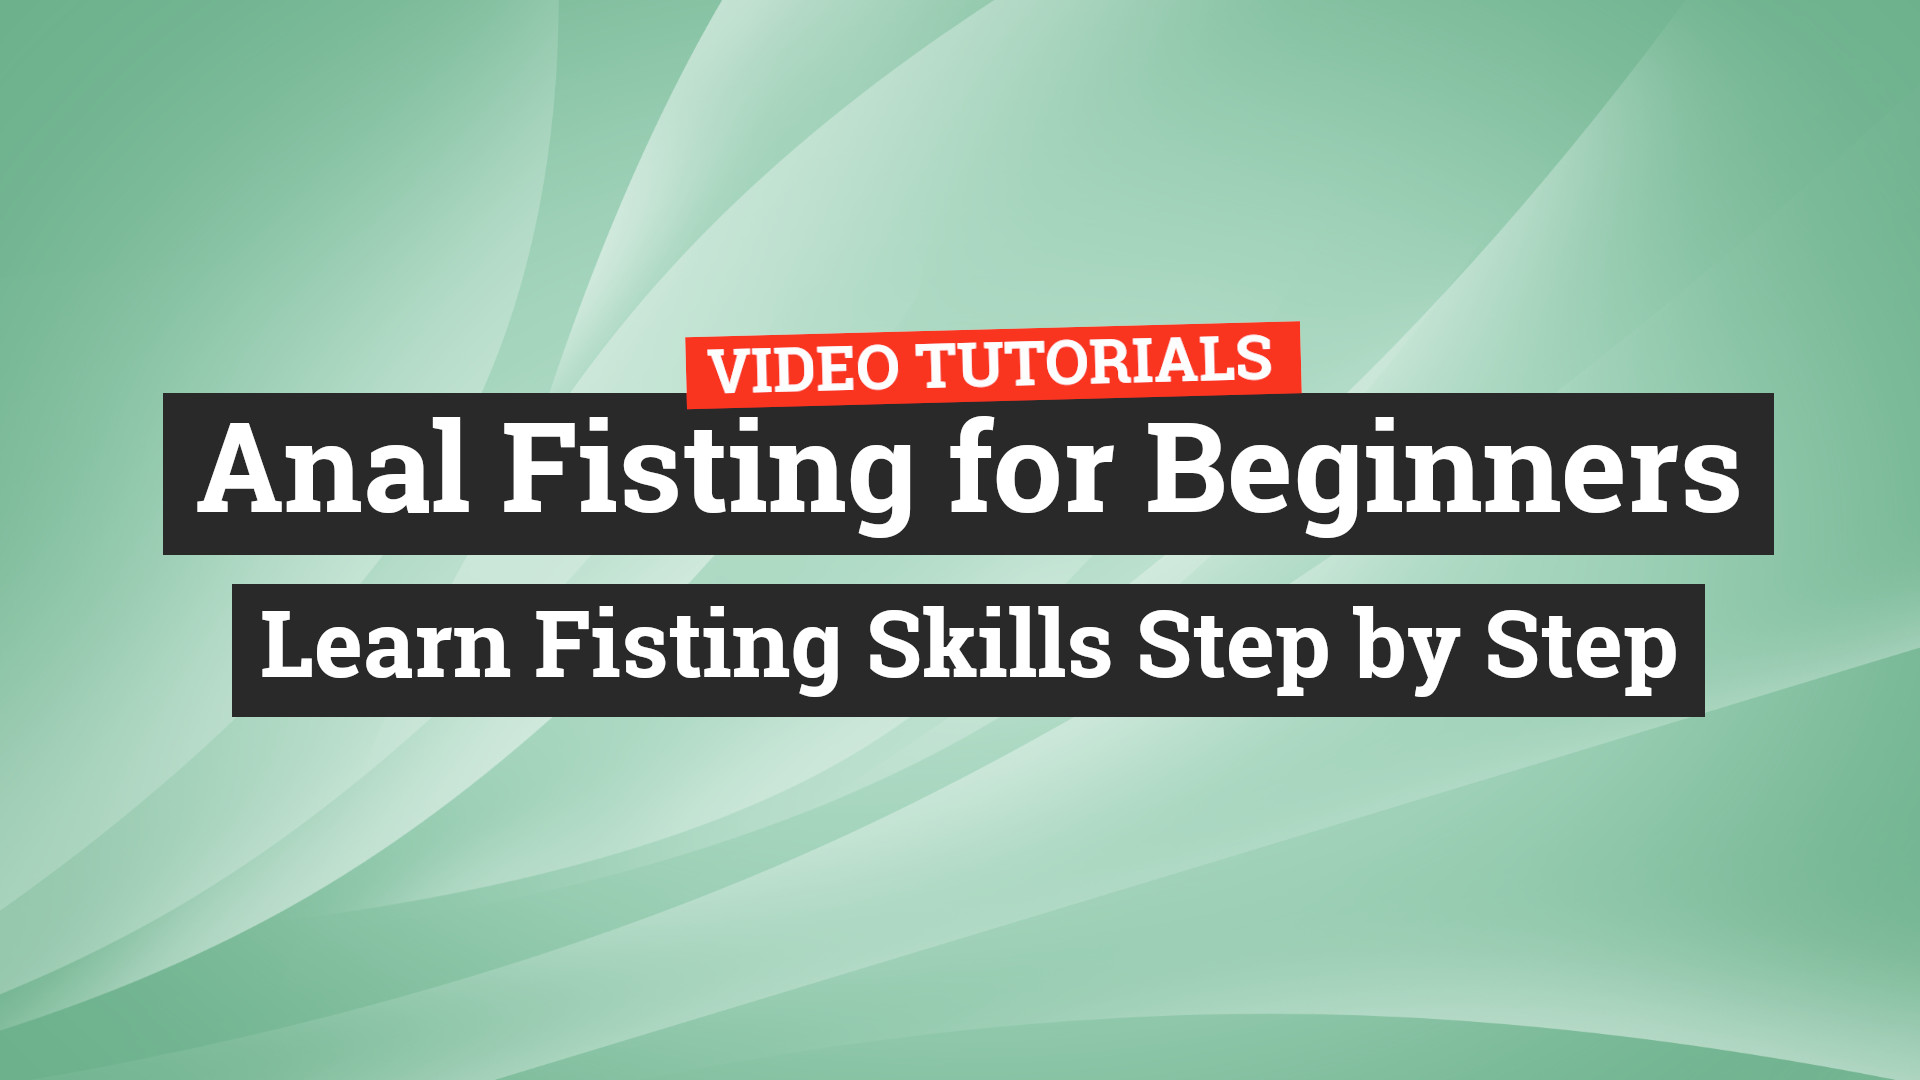 Anal Fisting for Beginners Step by Step